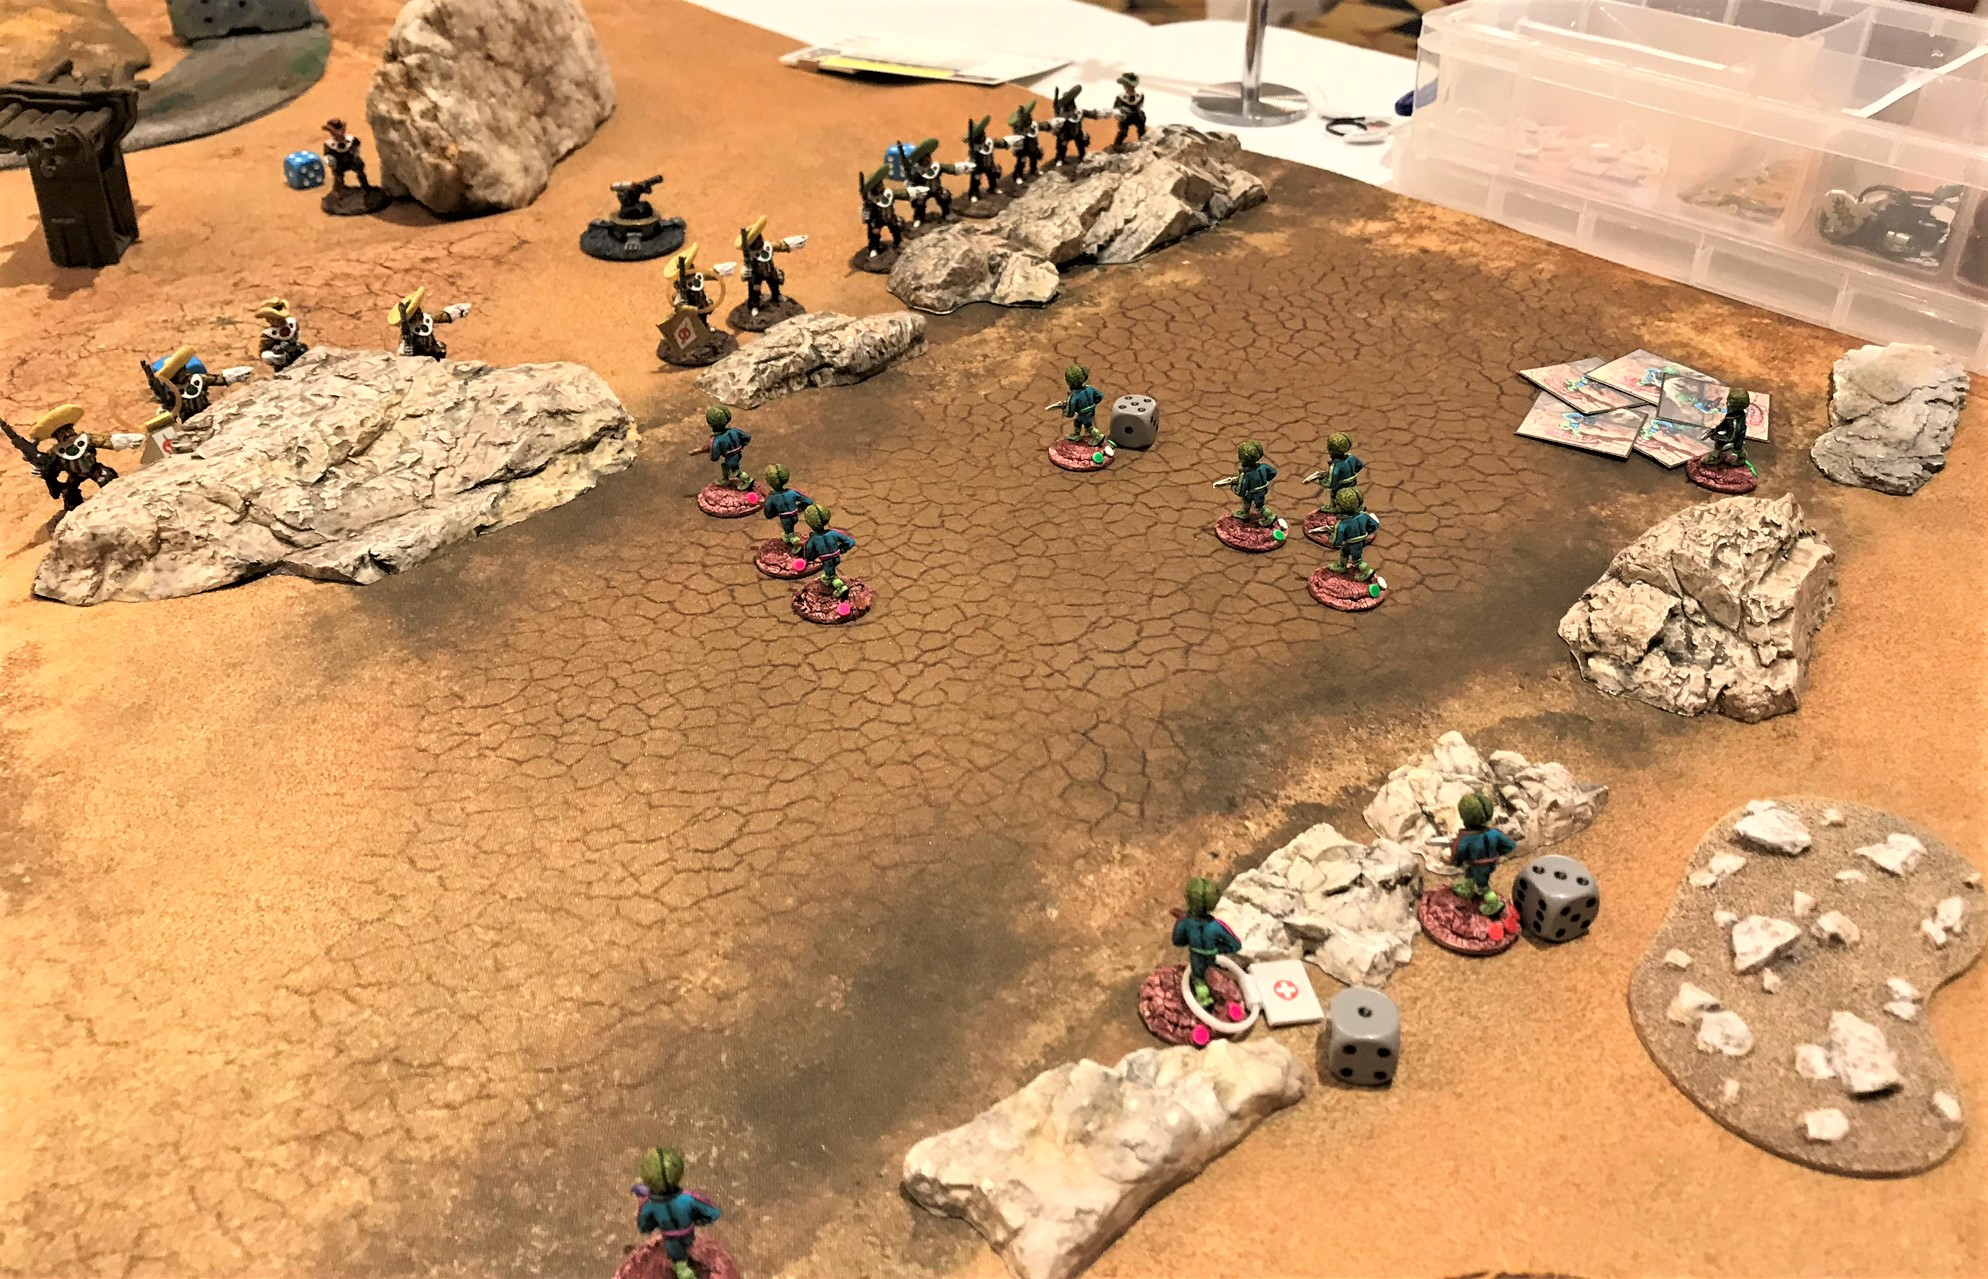 6 Martians take casualties in wadi